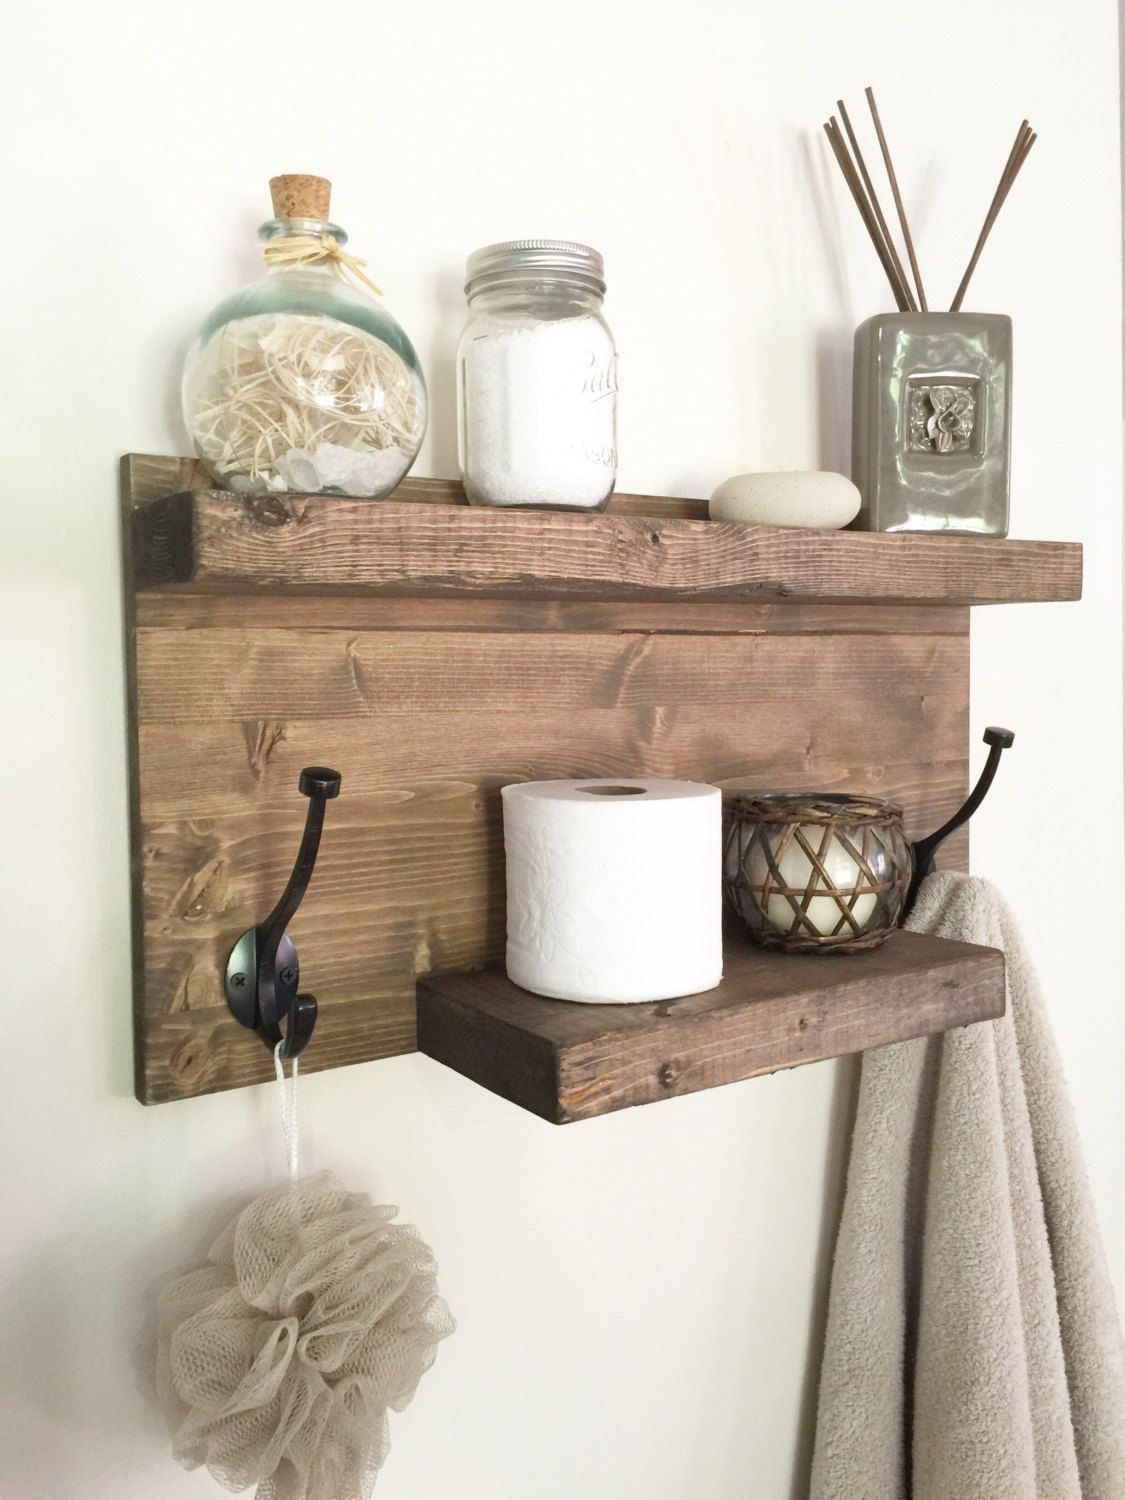 Decorative Rustic Storage Projects For Your Bathroom: Rustic Bathroom Shelf, Rustic Wood Shelf, Towel Rack, Entryway Shelf, Farmhouse Decor, Bathroom